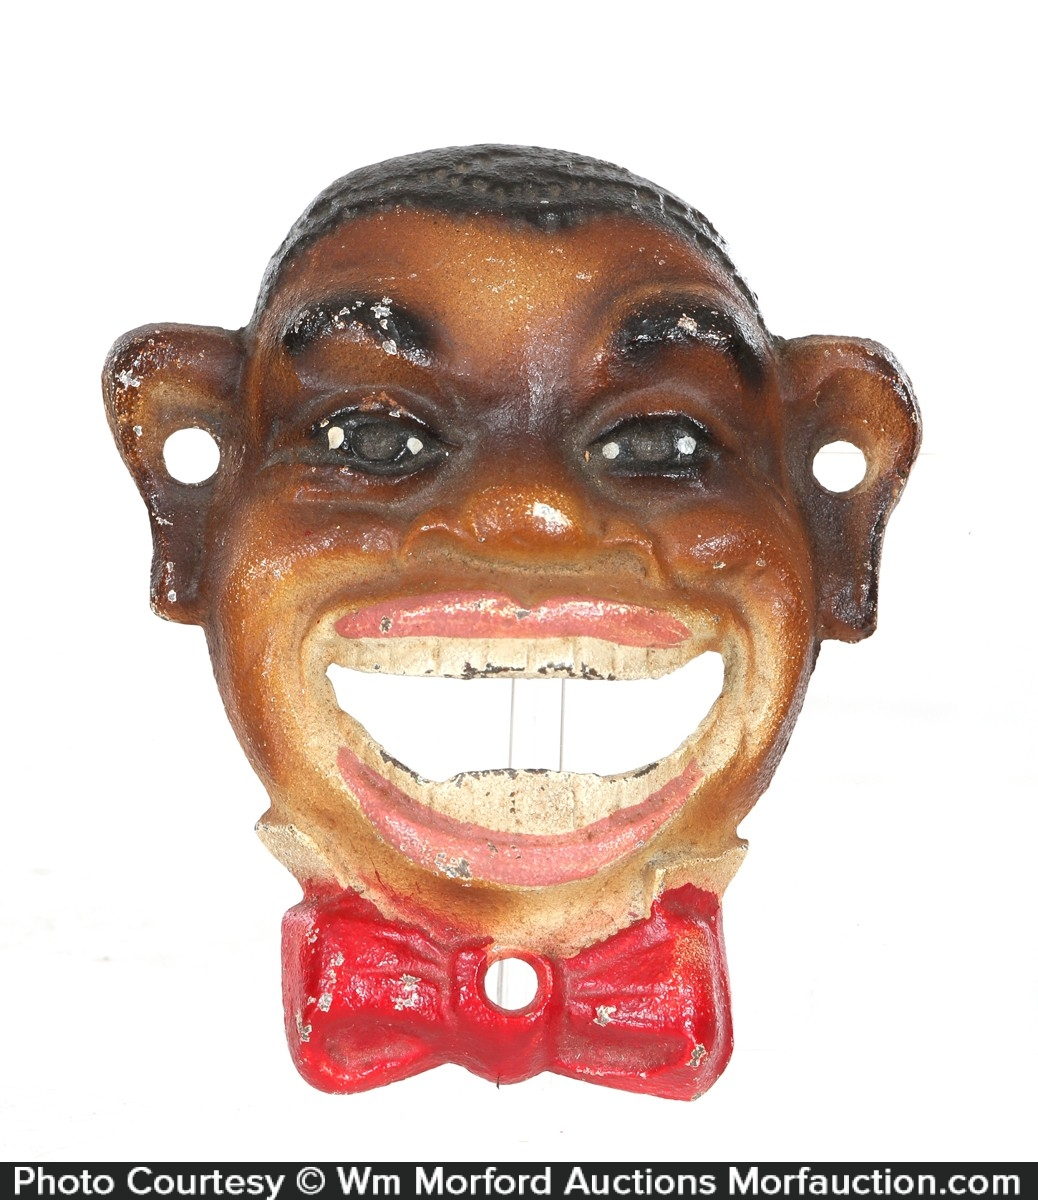 Black Man Bottle Opener